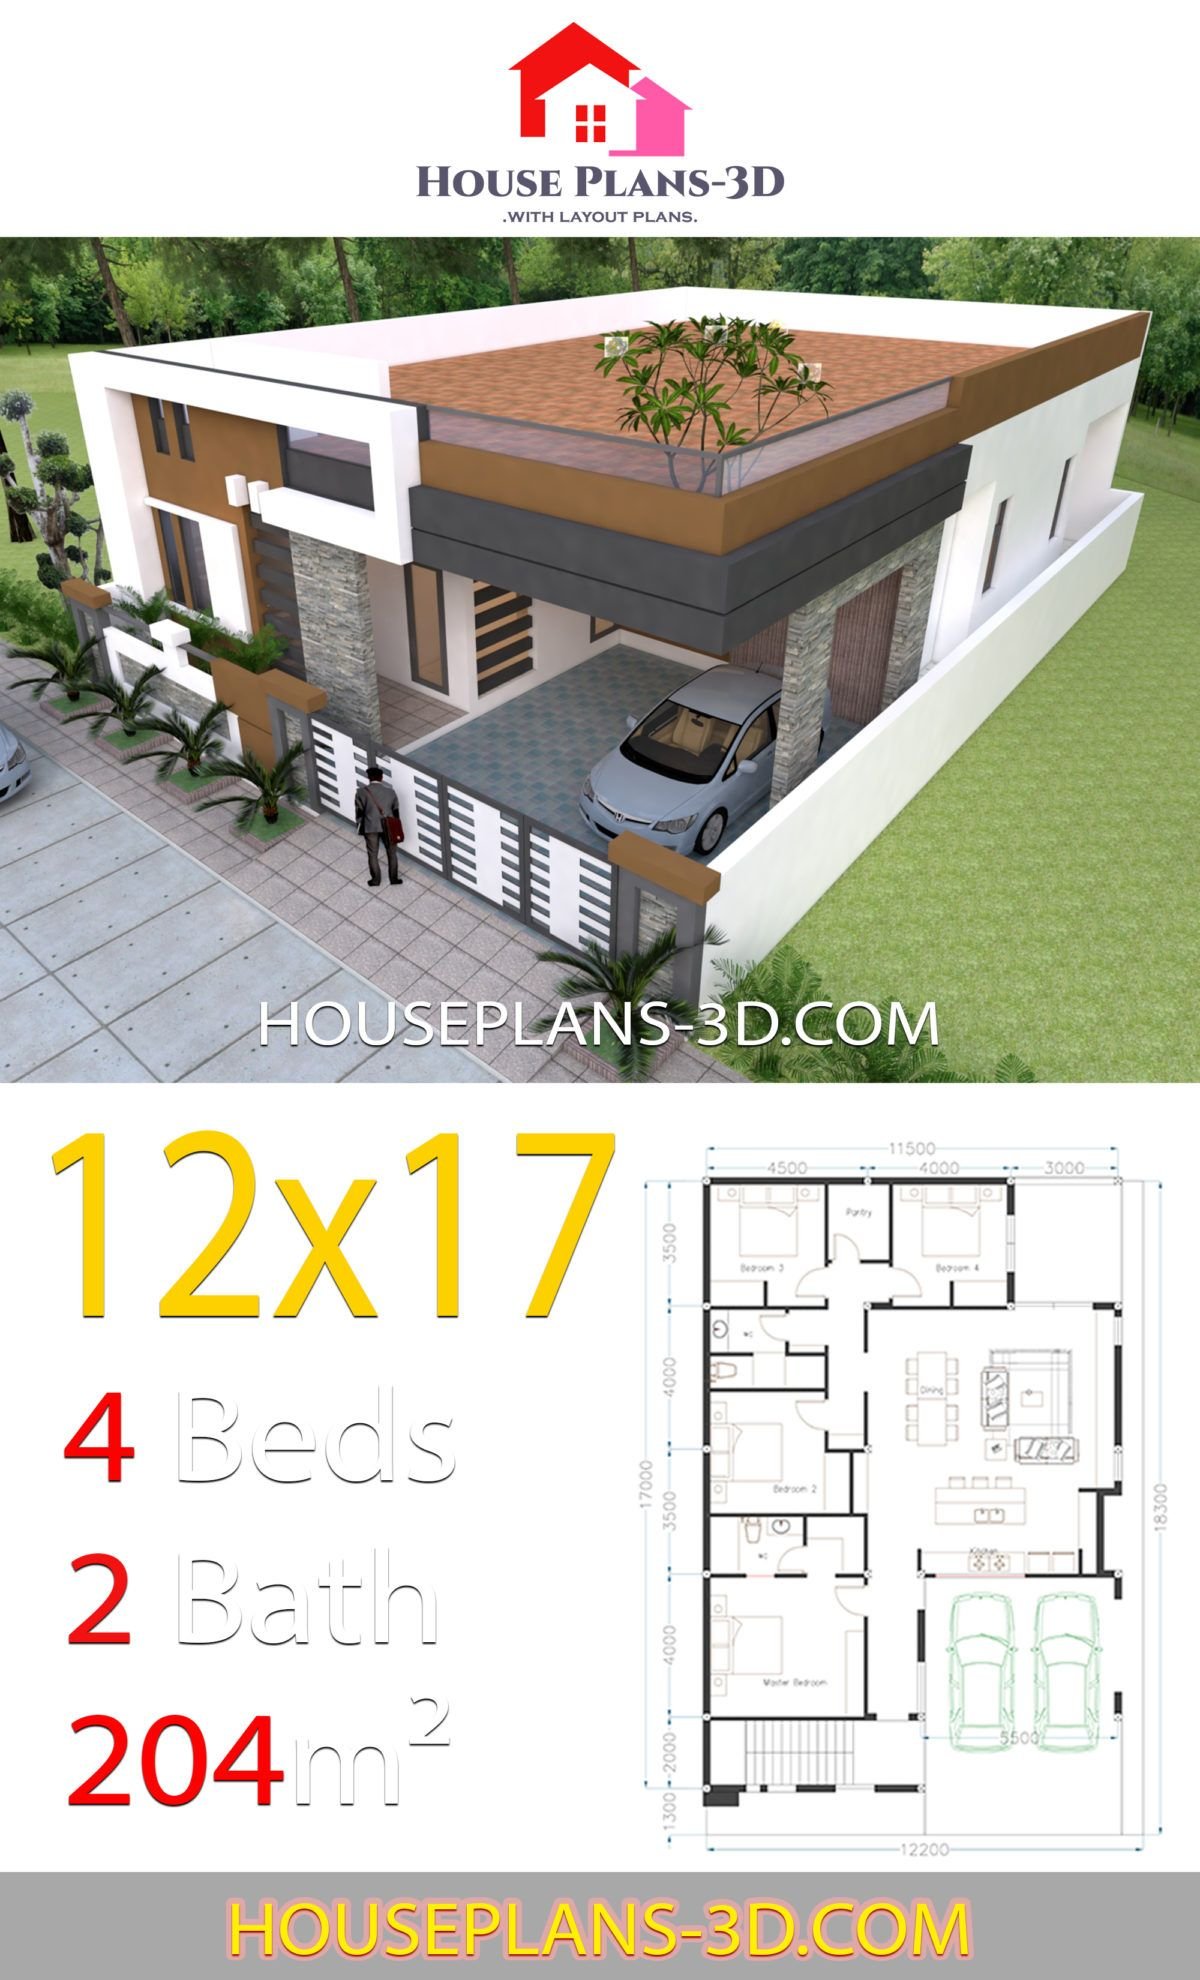 House Design 12x17 With 4 Bedrooms Terrace Roof House Plans 3d In 2020 House Plan Gallery Modern House Plans Small House Design